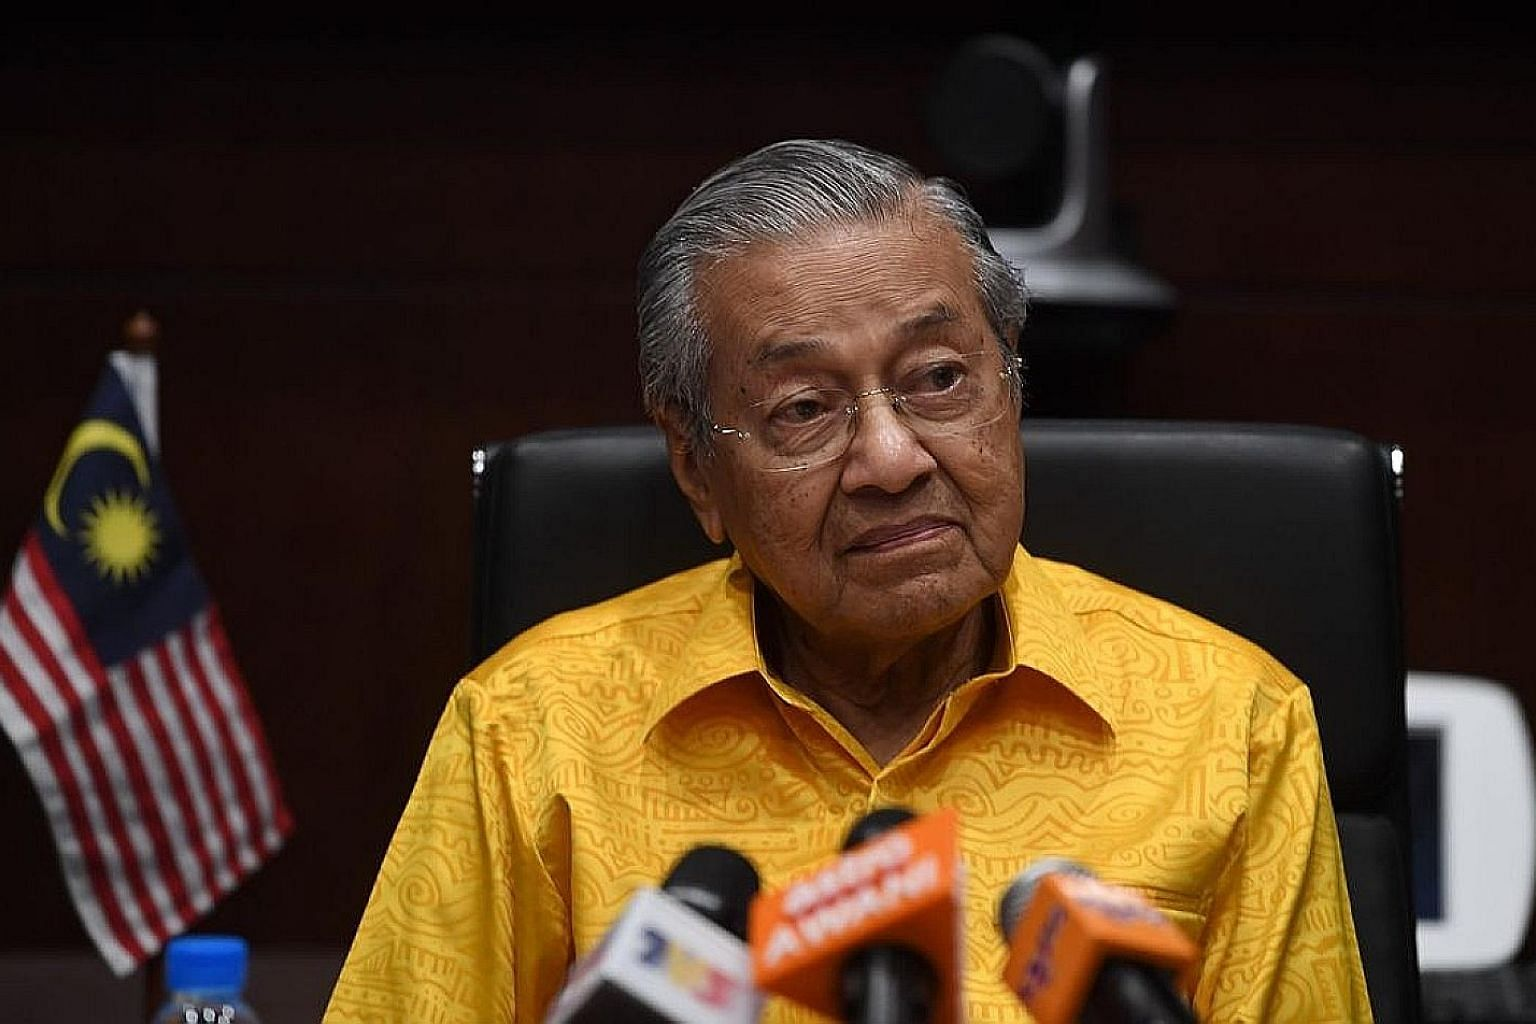 """Malaysian Prime Minister Mahathir Mohamad said yesterday that """"the important thing is that Singapore agrees to a negotiation - until we finish negotiation we cannot give a final answer""""."""